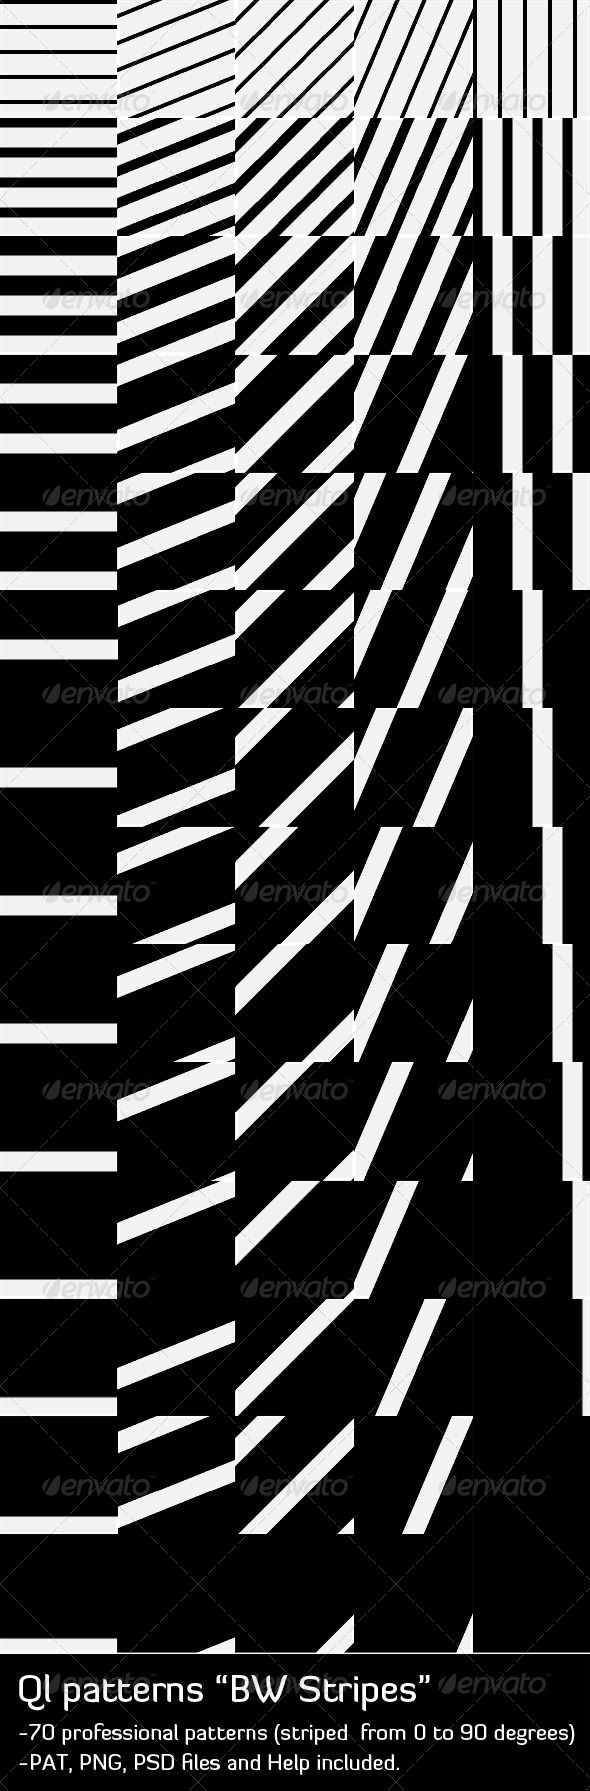 QL Patterns - BW Stripes  #GraphicRiver         -70 professional patterns (striped from 0 to 90 degrees) -PAT, PNG , PSD files and Help included.     Created: 22January11 GraphicsFilesIncluded: PhotoshopPSD #TransparentPNG #JPGImage Layered: No MinimumAdobeCSVersion: CS PixelDimensions: 170x170 Tags: background #blackandwhite #bw #clean #lines #mono #pattern #ql #striped #stripes #web